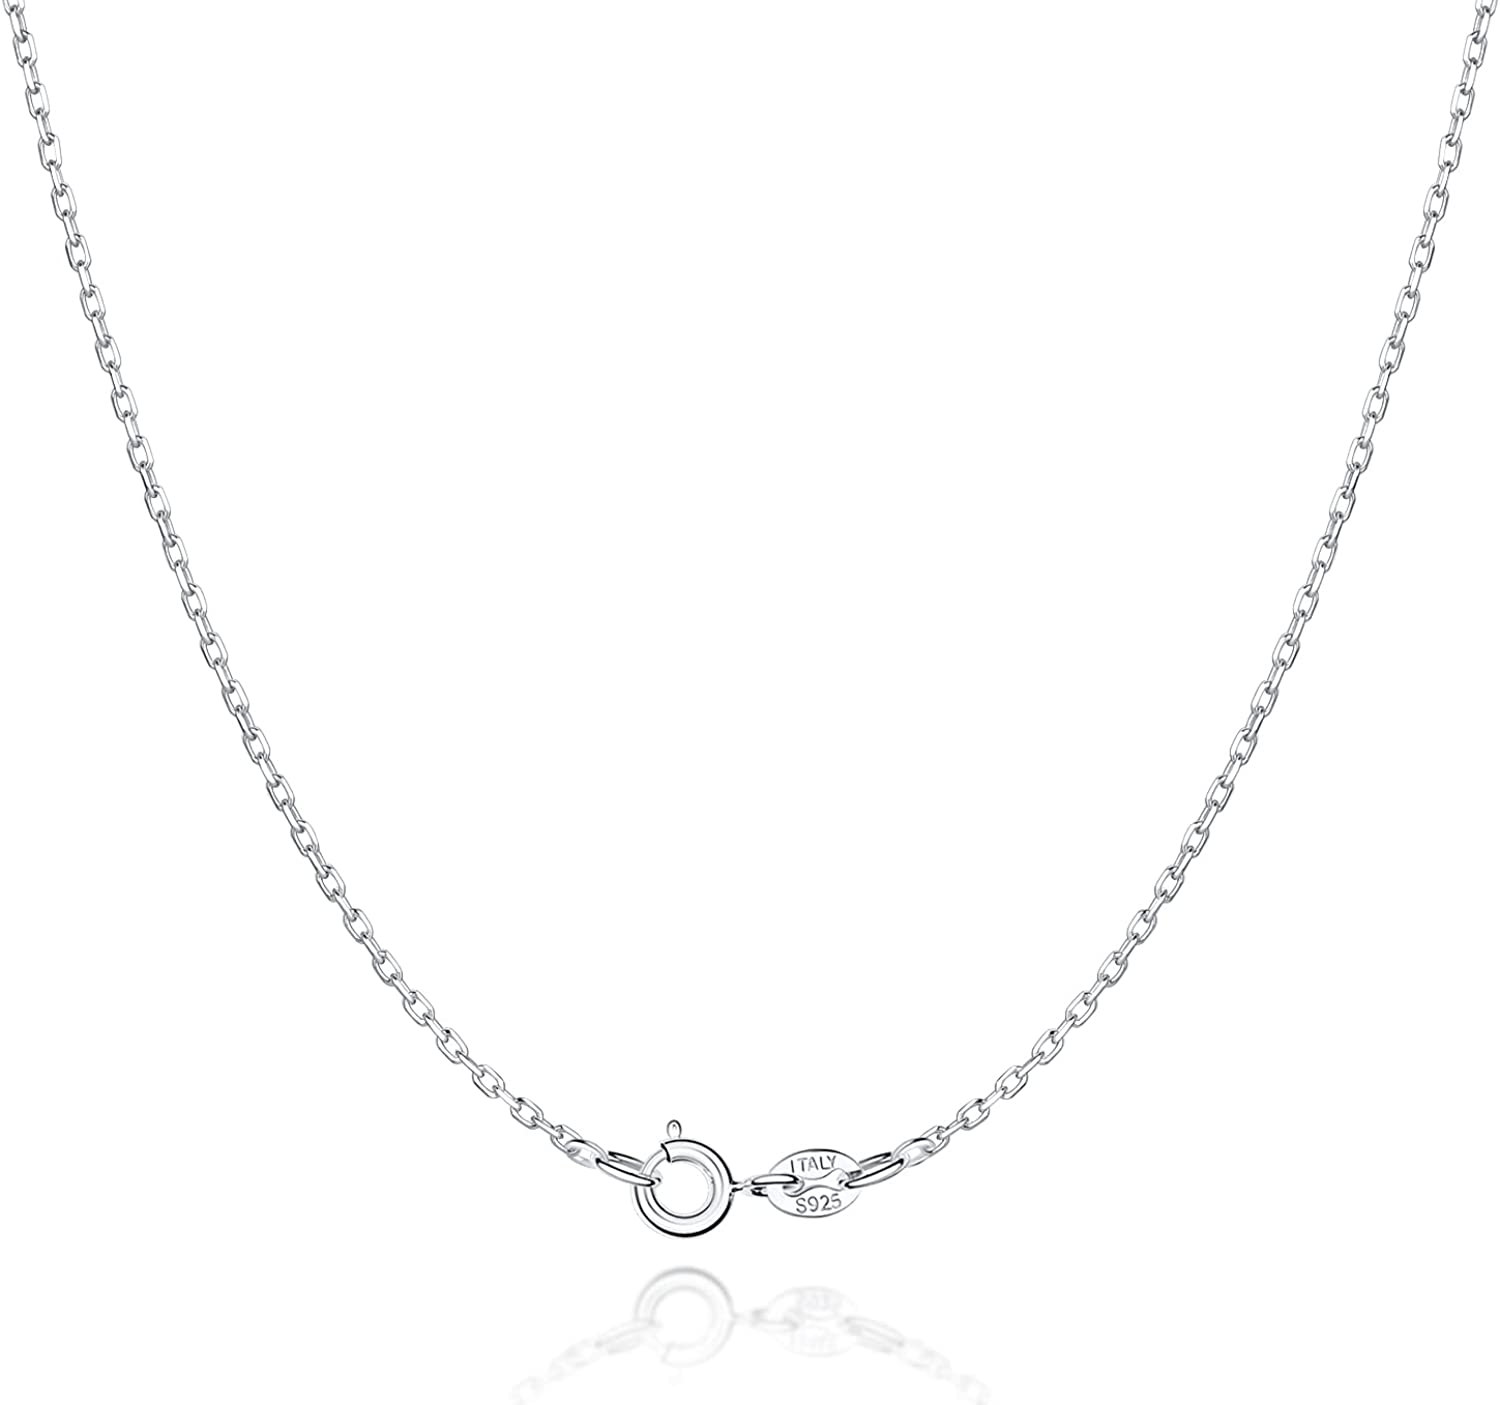 Jewlpire 925 Sterling Silver Chain Necklace for Women & Girls 1.3mm Cable Chain Italian Thin Silver Necklace Chain Perfect Replacement Chain Necklace - Super Sturdy & Shiny & 16 Inch: Clothing, Shoes & Jewelry